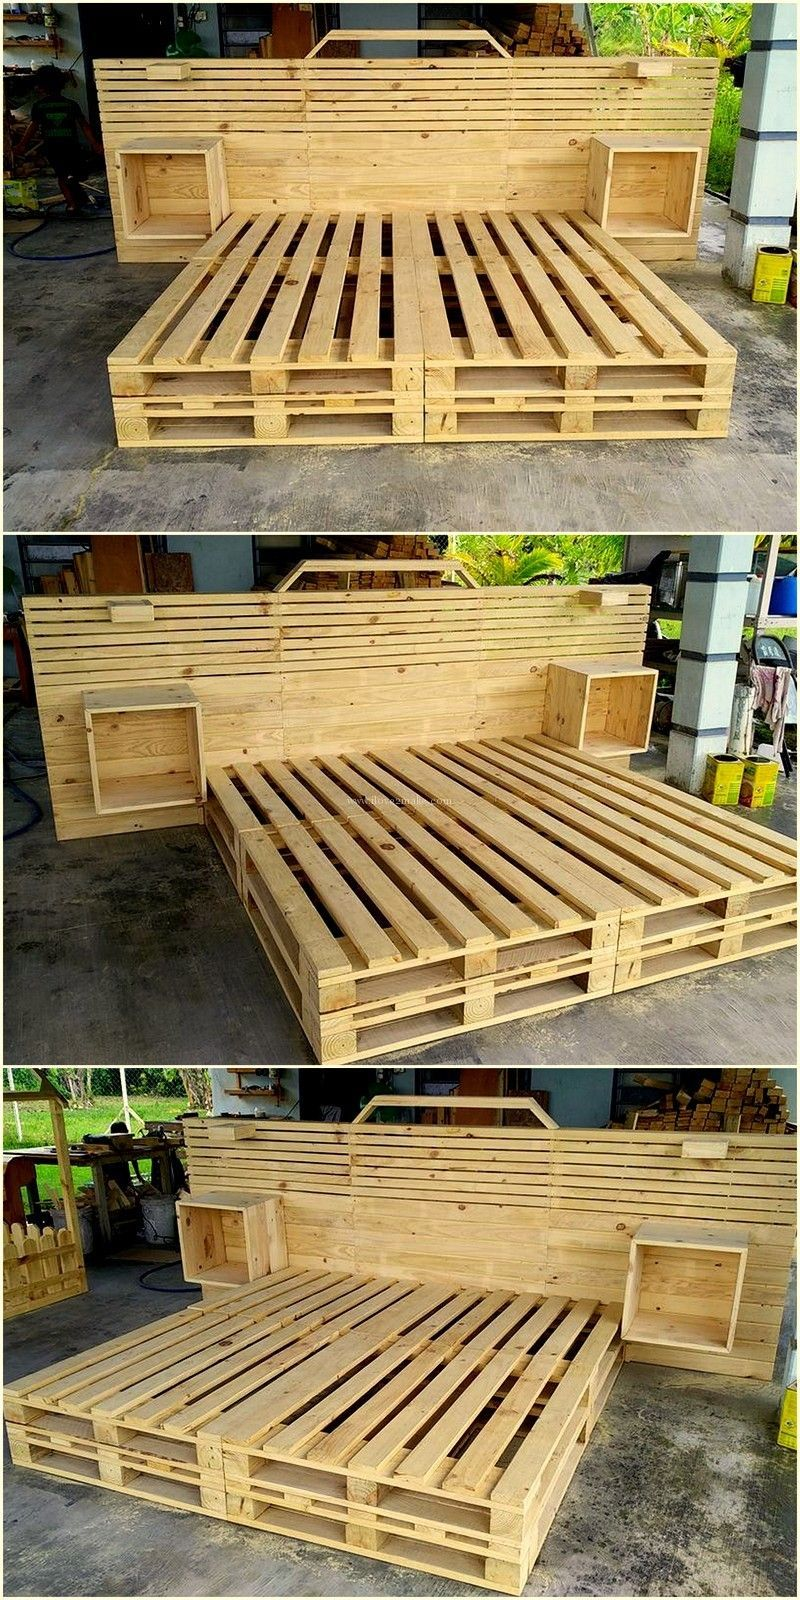 pallet furniture plans bedroom furniture ideas diy. 5 Easy Steps To Create A DIY Bed With Pallet Wood. Bedroom FurnitureWooden Furniture Plans Ideas Diy B